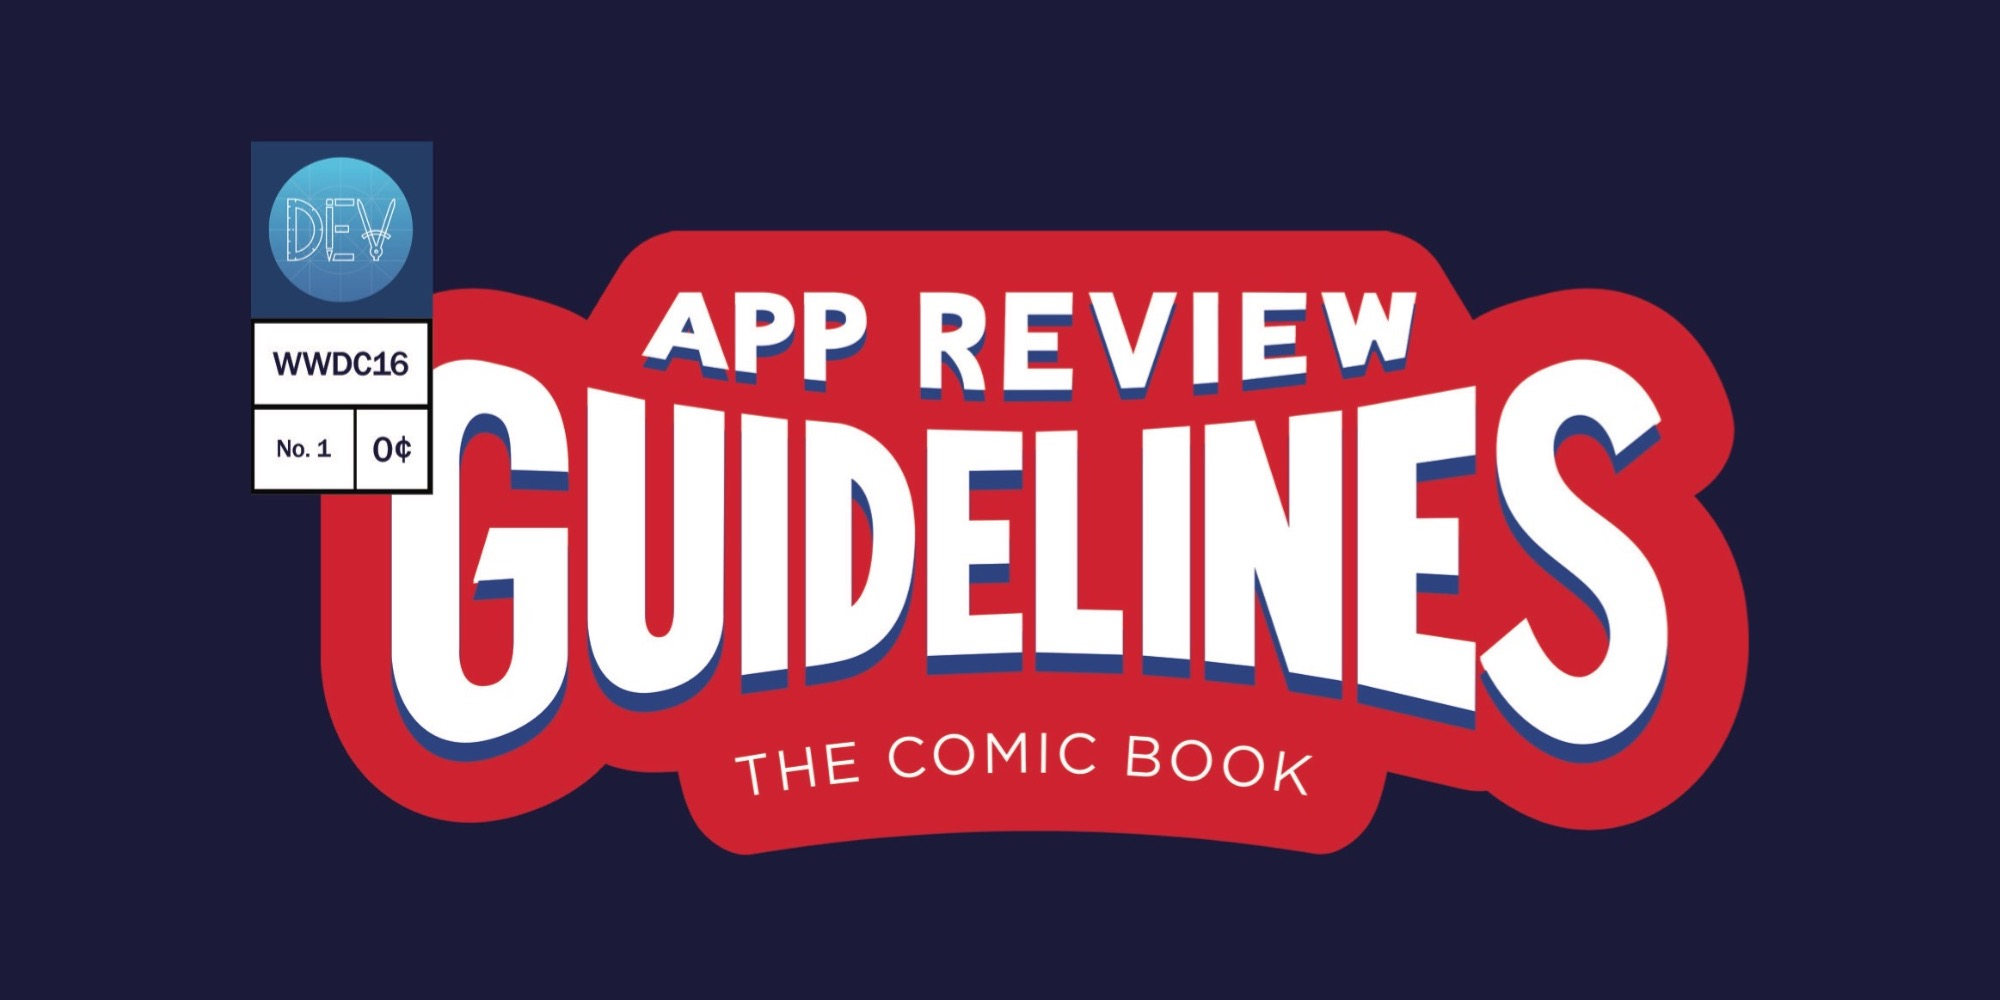 App Review Guidelines Comic Book